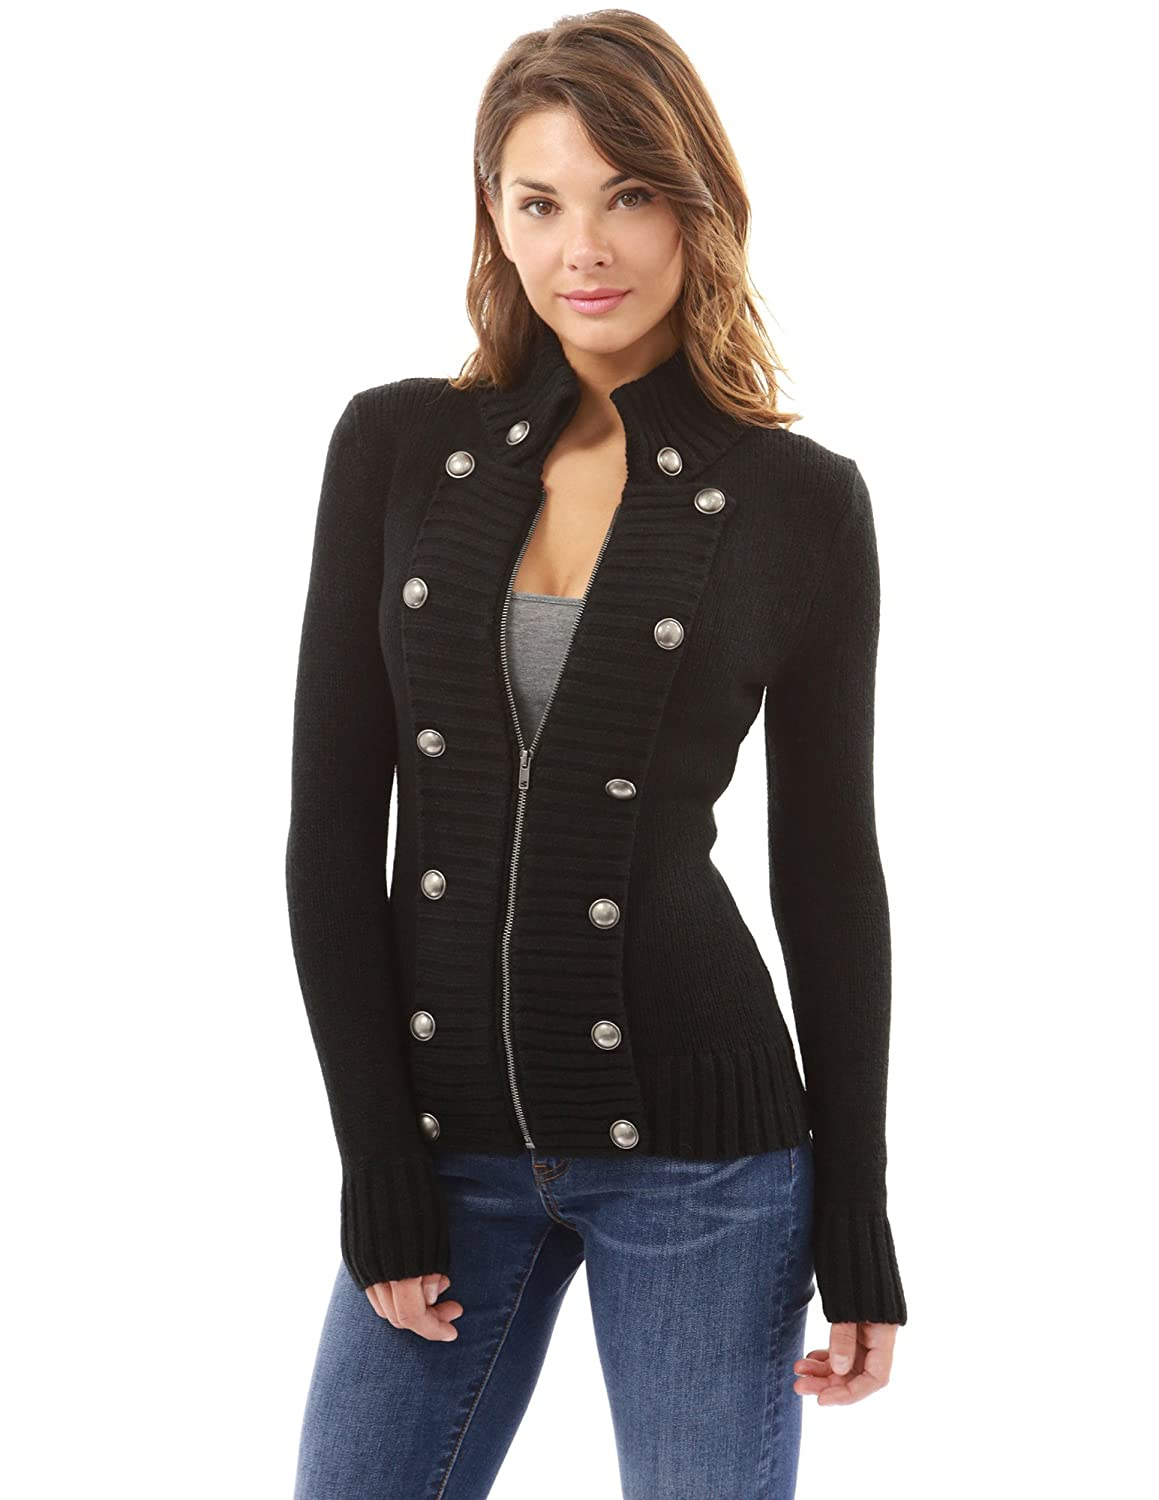 PattyBoutik Women Military Mock Neck Zip Up Cardigan